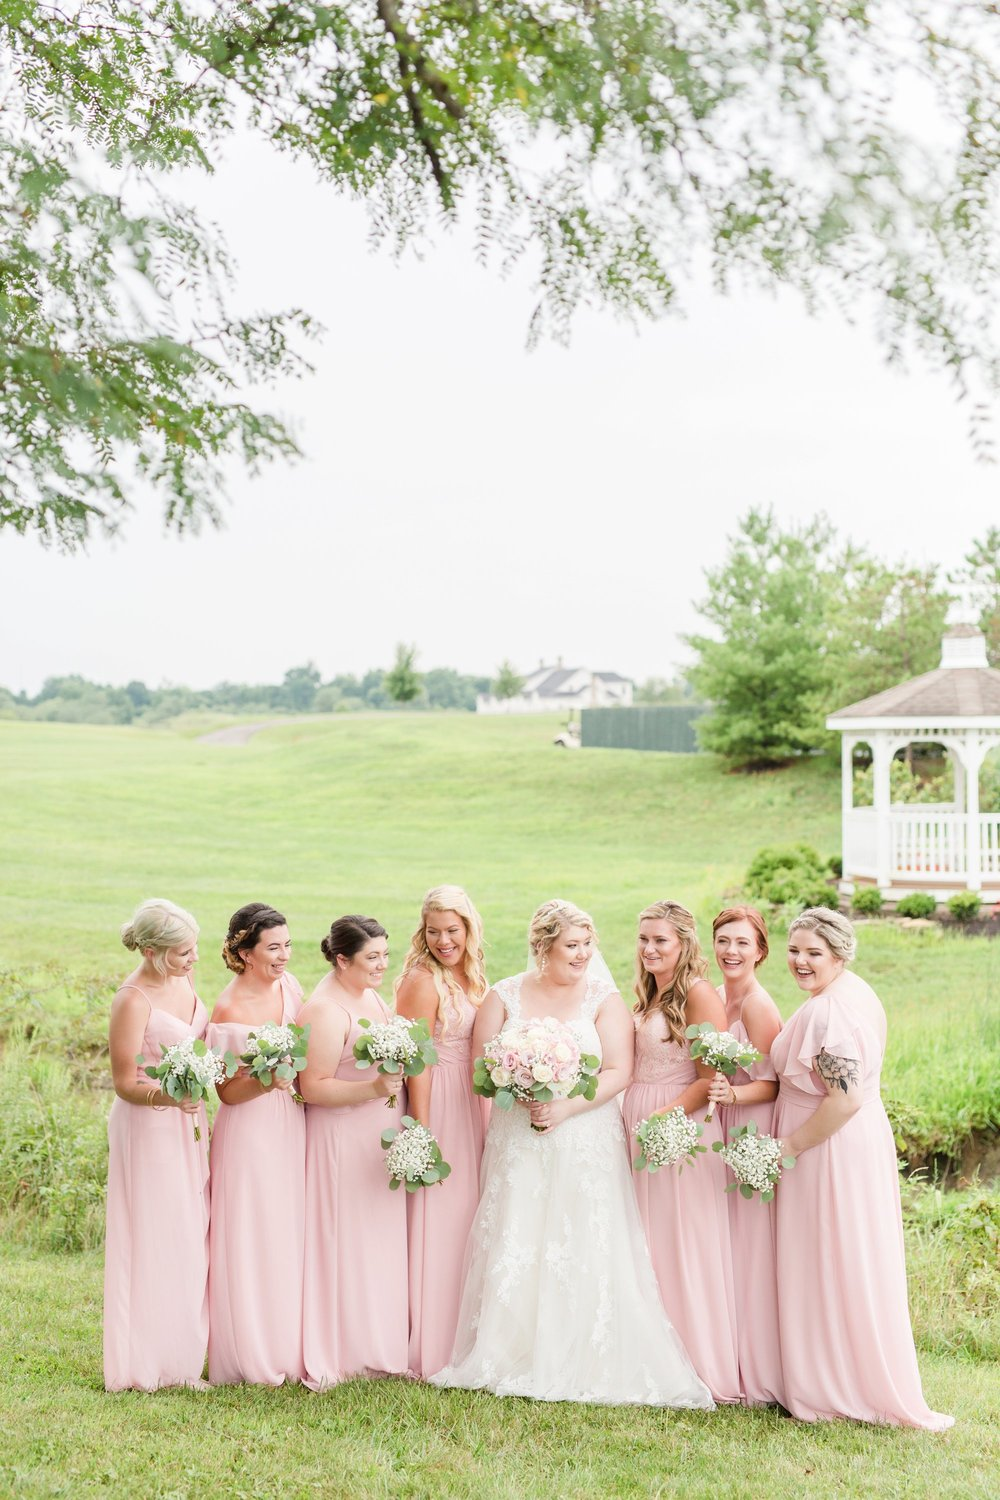 Michelle_Joy_Photography_Blush_Northstar_Golf_Club_Wedding_55.jpg